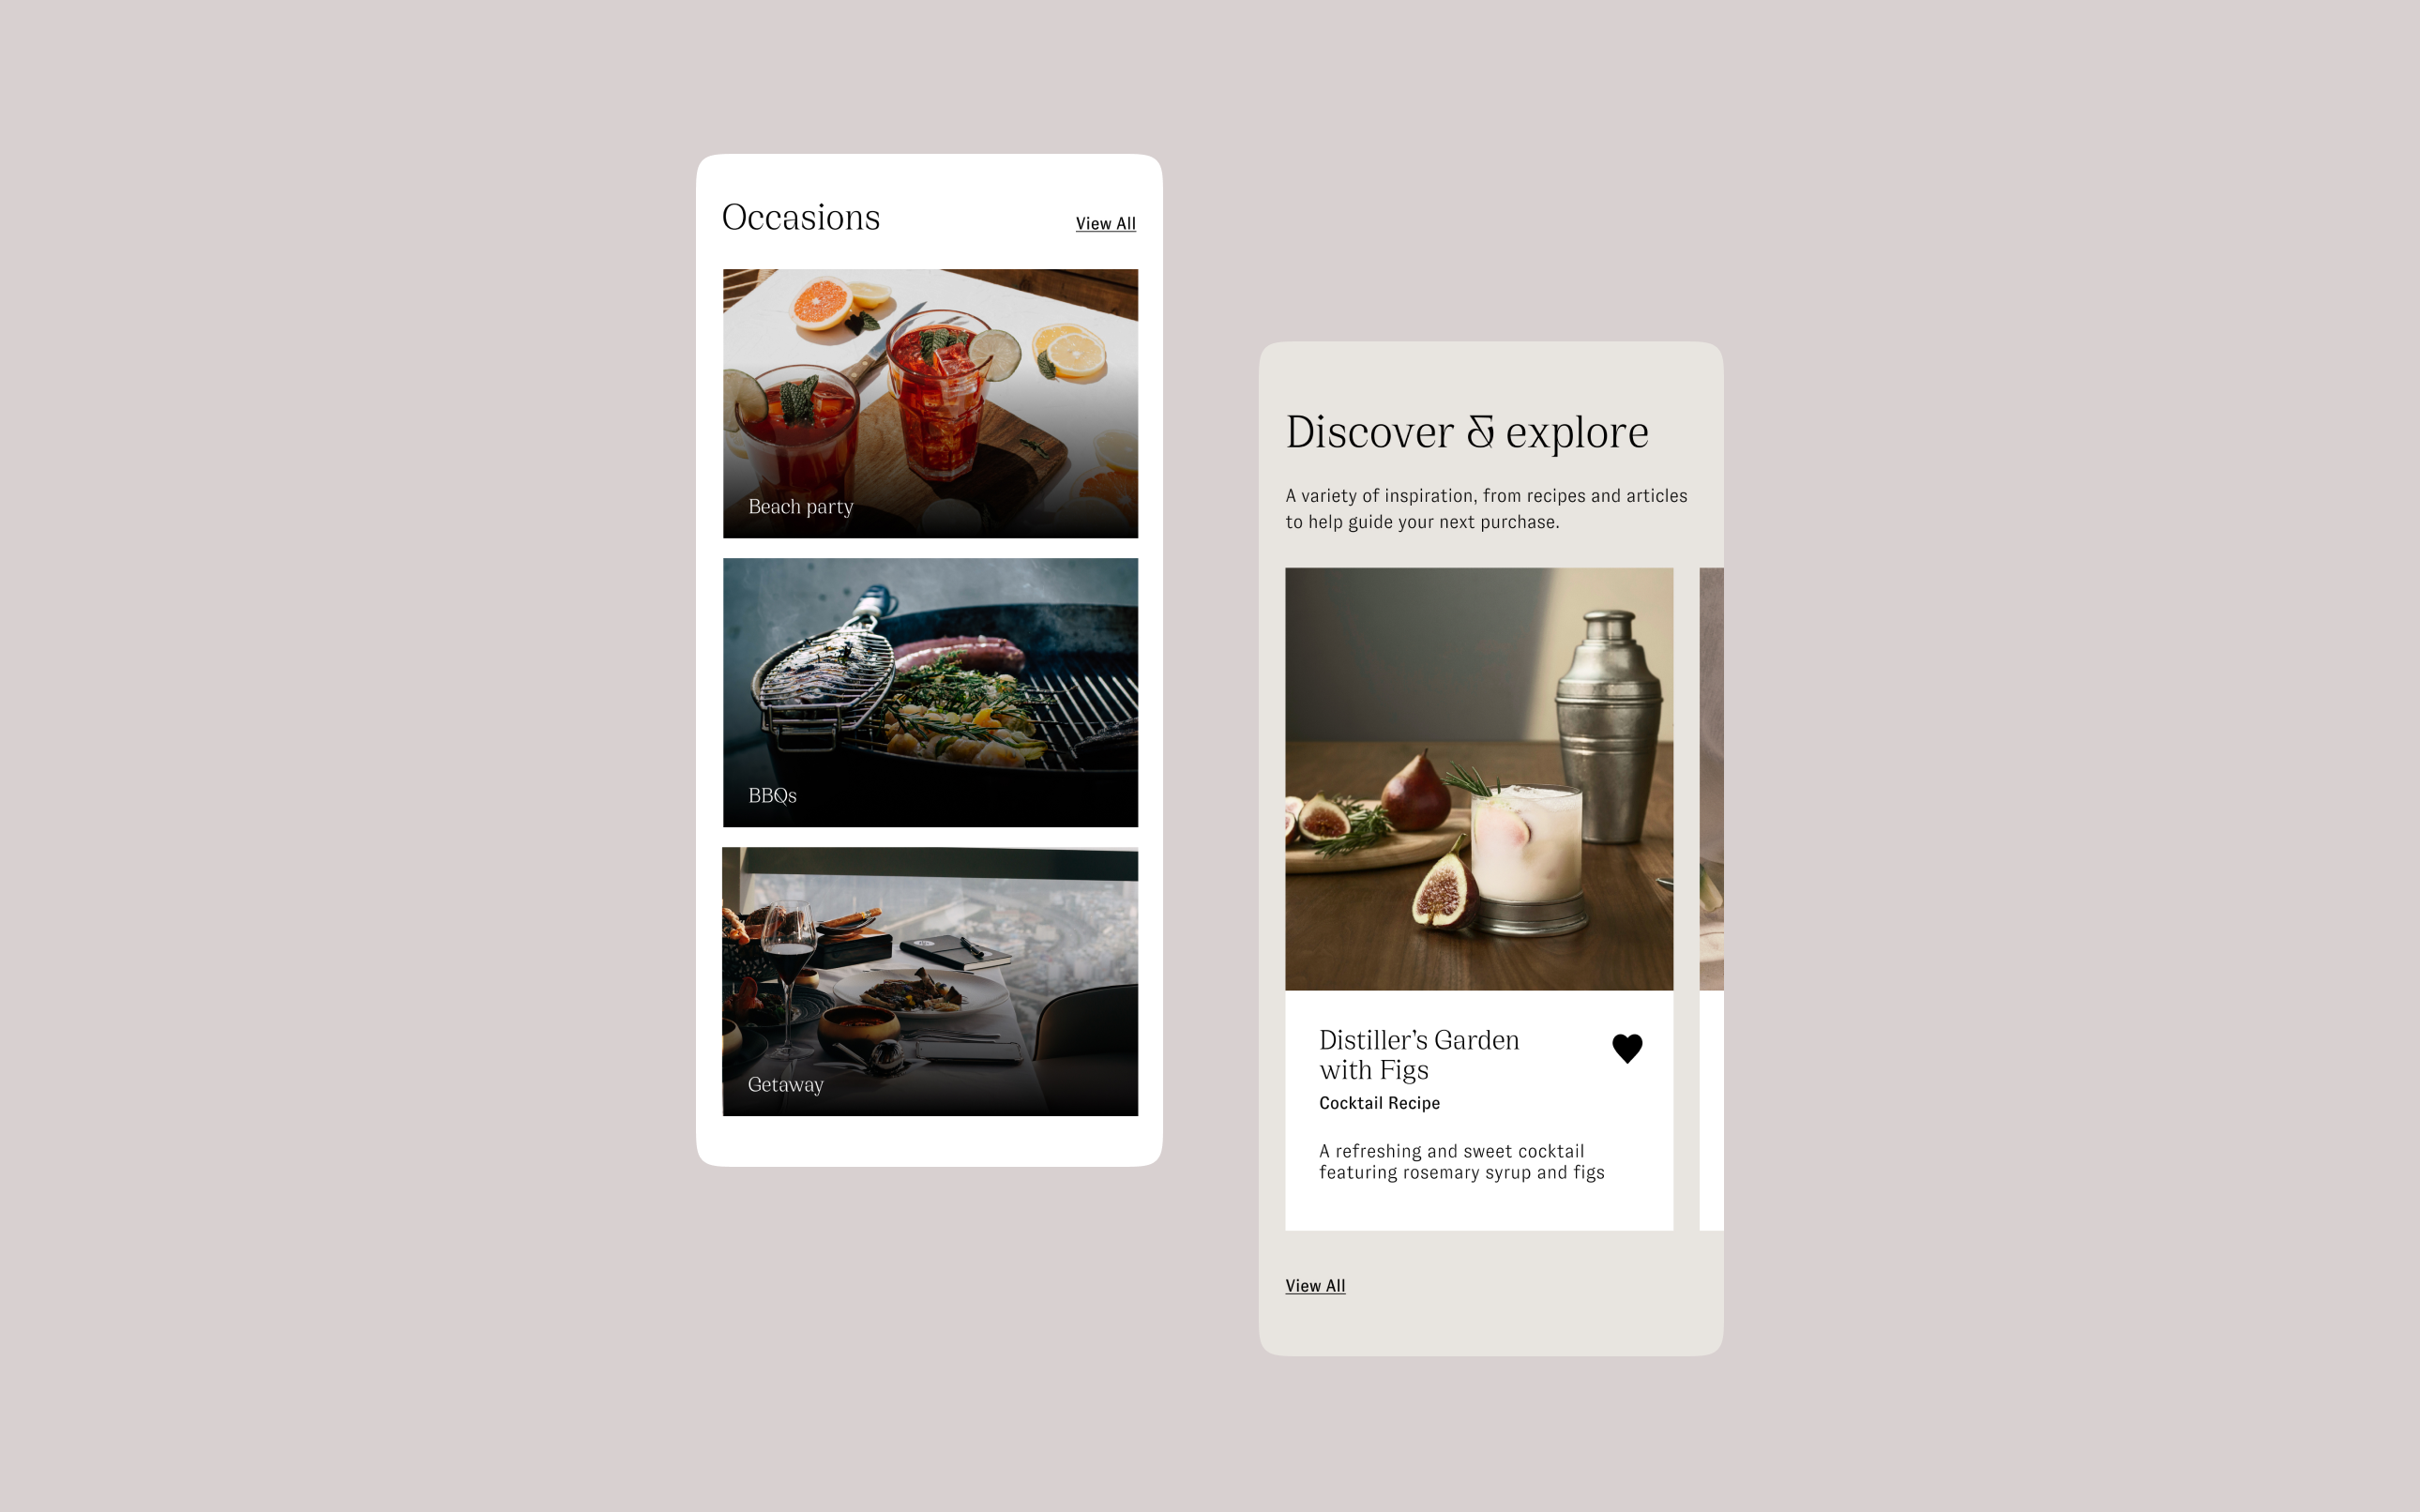 Henry & Paul mobile website screenshots, showing imagery and discover & explore modules